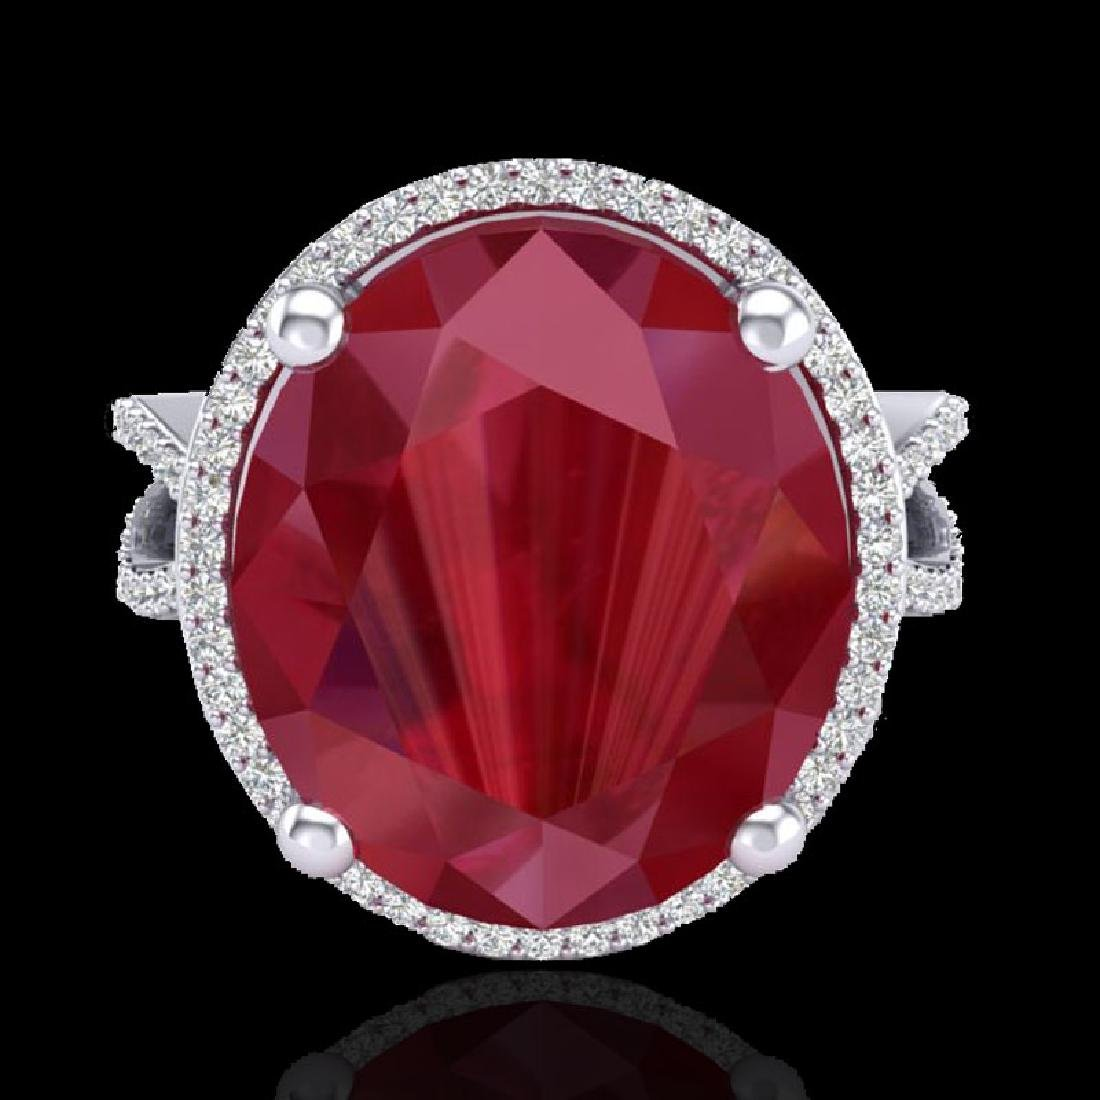 12 CTW Ruby & Micro Pave VS/SI Diamond Halo Ring 18K